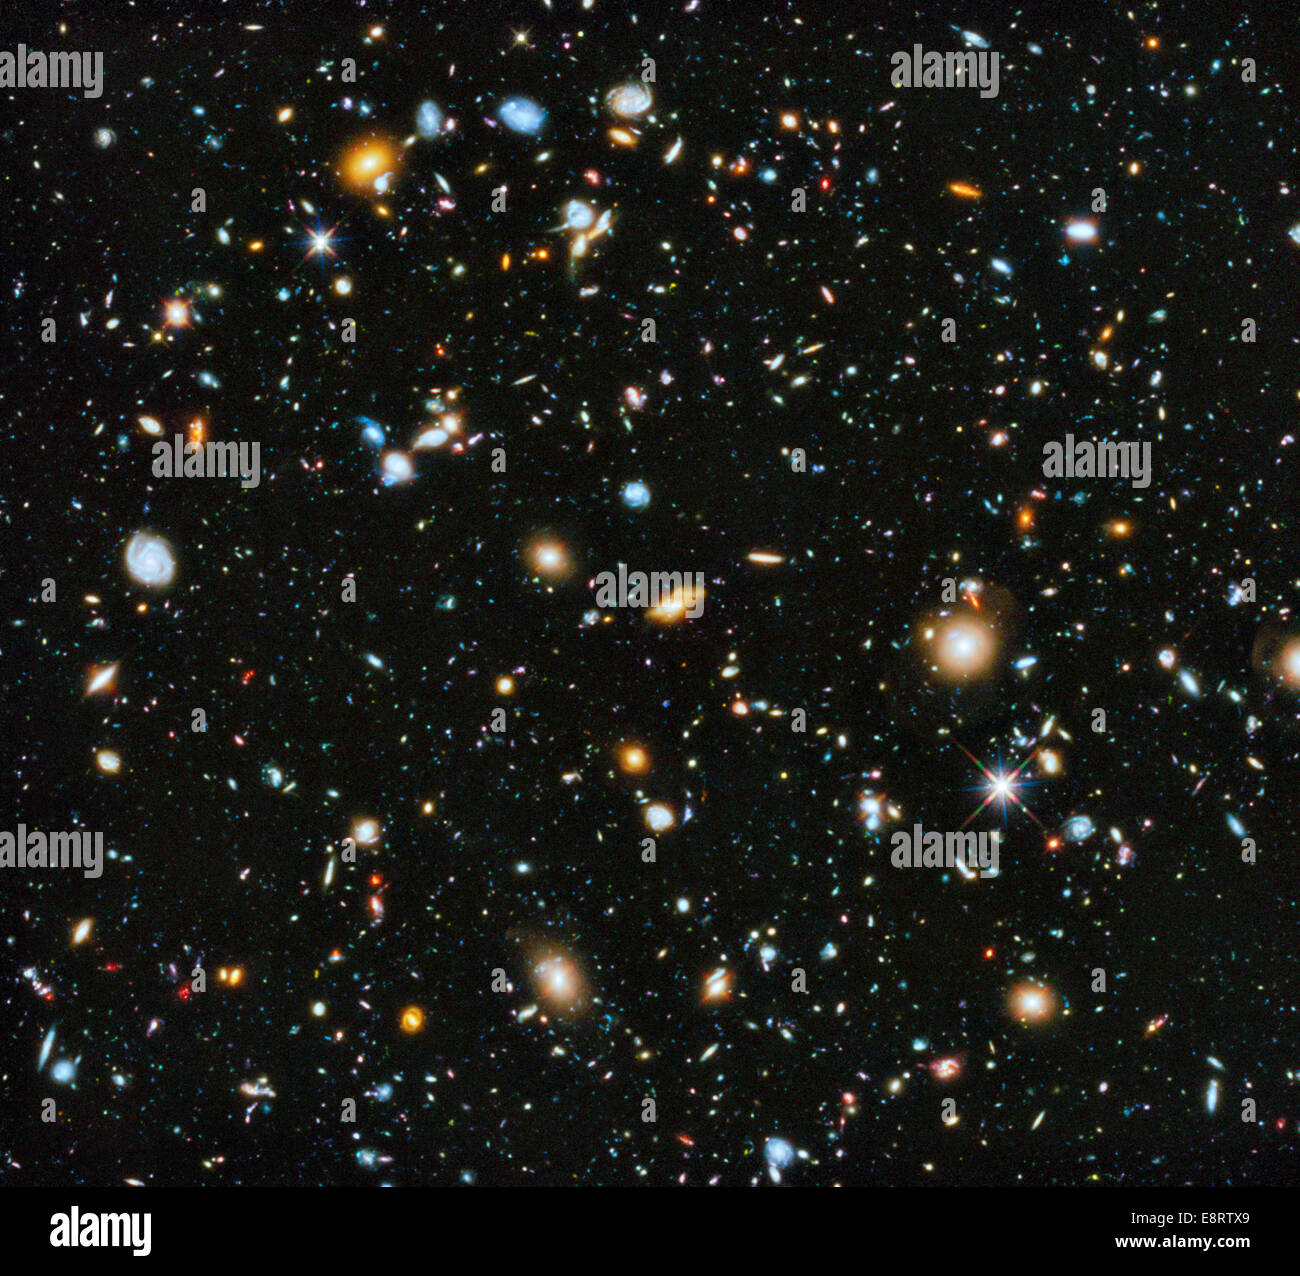 Astronomers using NASA's Hubble Space Telescope have assembled a comprehensive picture of the evolving universe - Stock Image